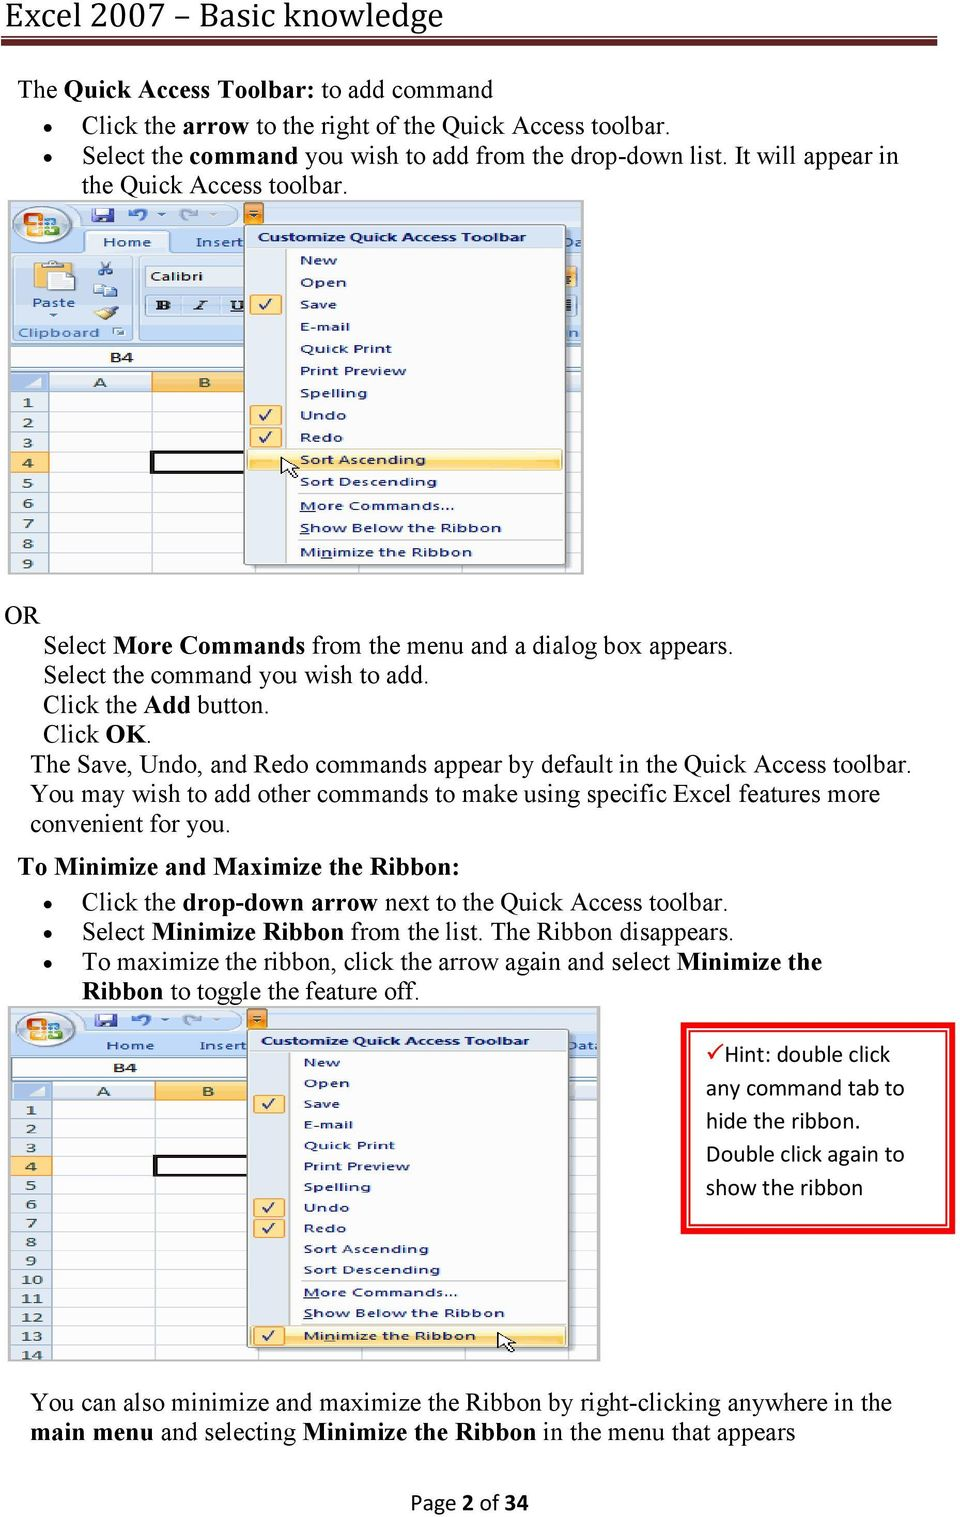 The Save, Undo, and Redo commands appear by default in the Quick Access toolbar. You may wish to add other commands to make using specific Excel features more convenient for you.